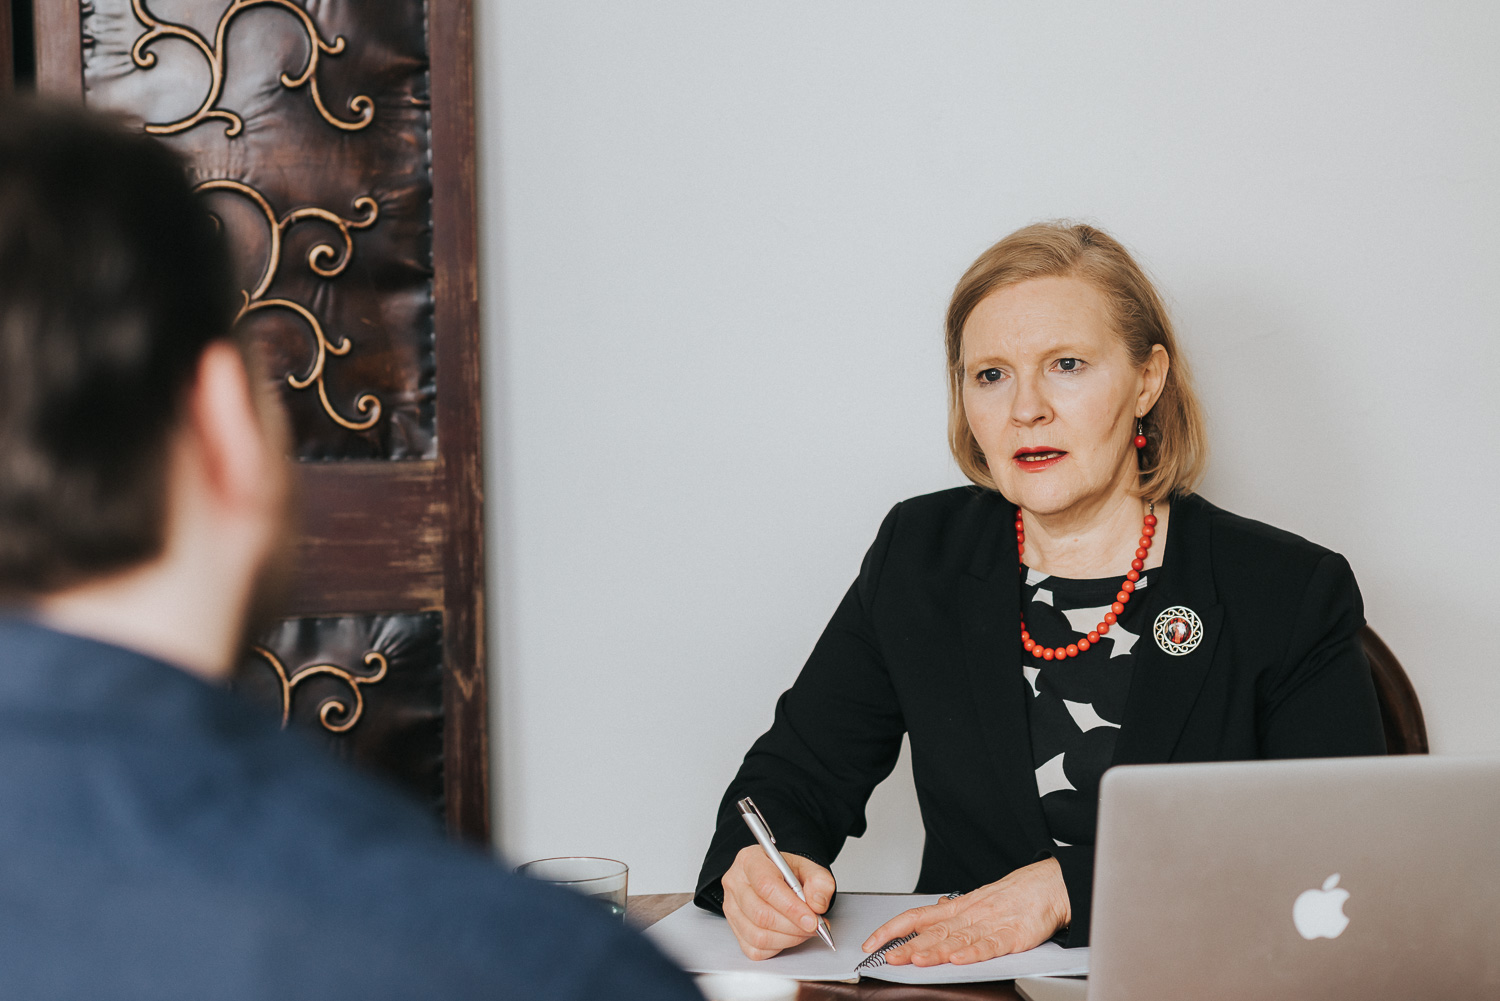 Lawyer listening to a client